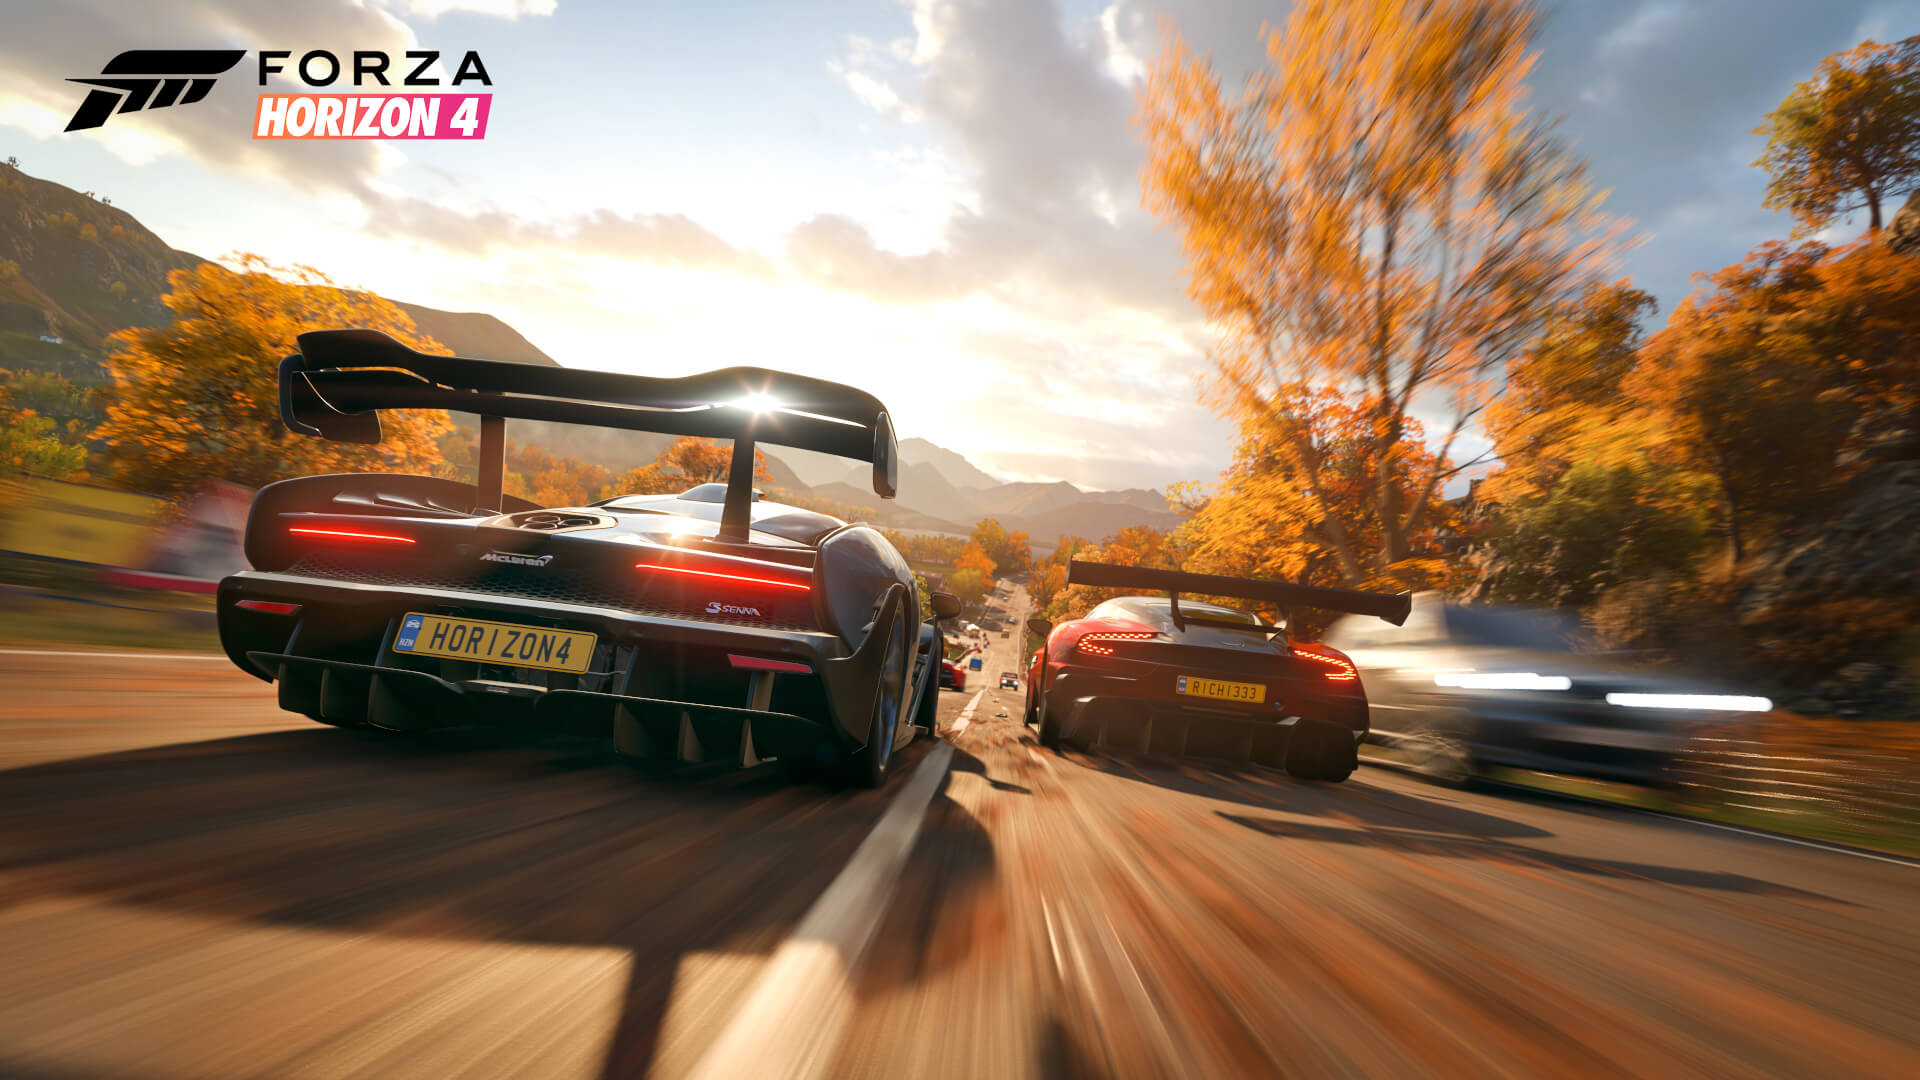 Forza Horizon 4's Beautiful Britain Is Truly Special